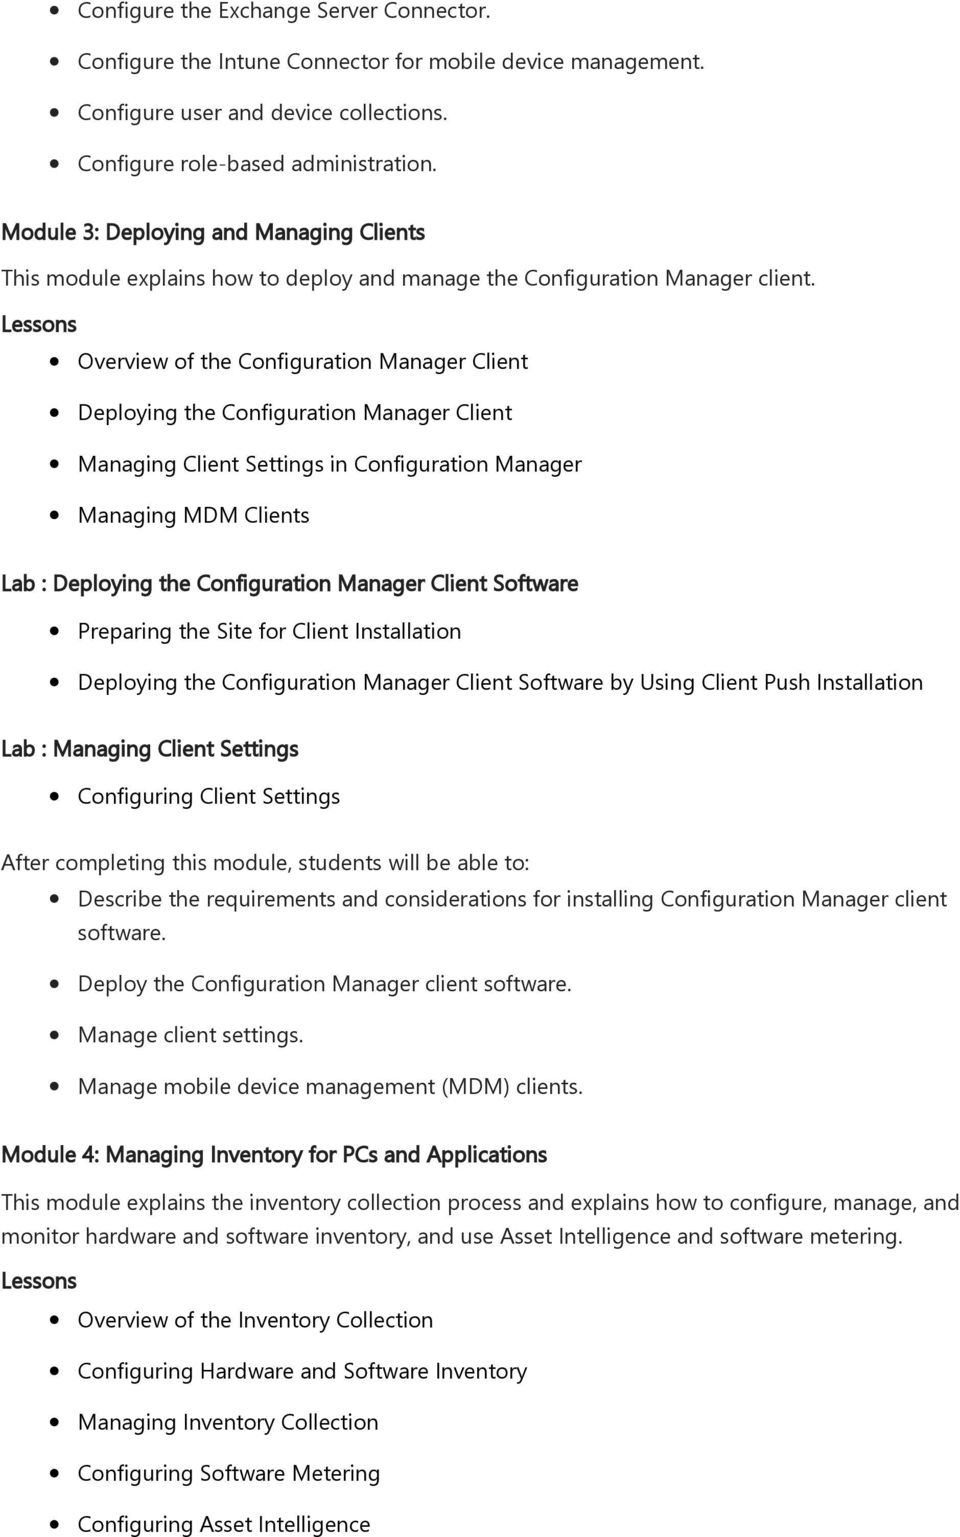 Overview of the Configuration Manager Client Deploying the Configuration Manager Client Managing Client Settings in Configuration Manager Managing MDM Clients Lab : Deploying the Configuration